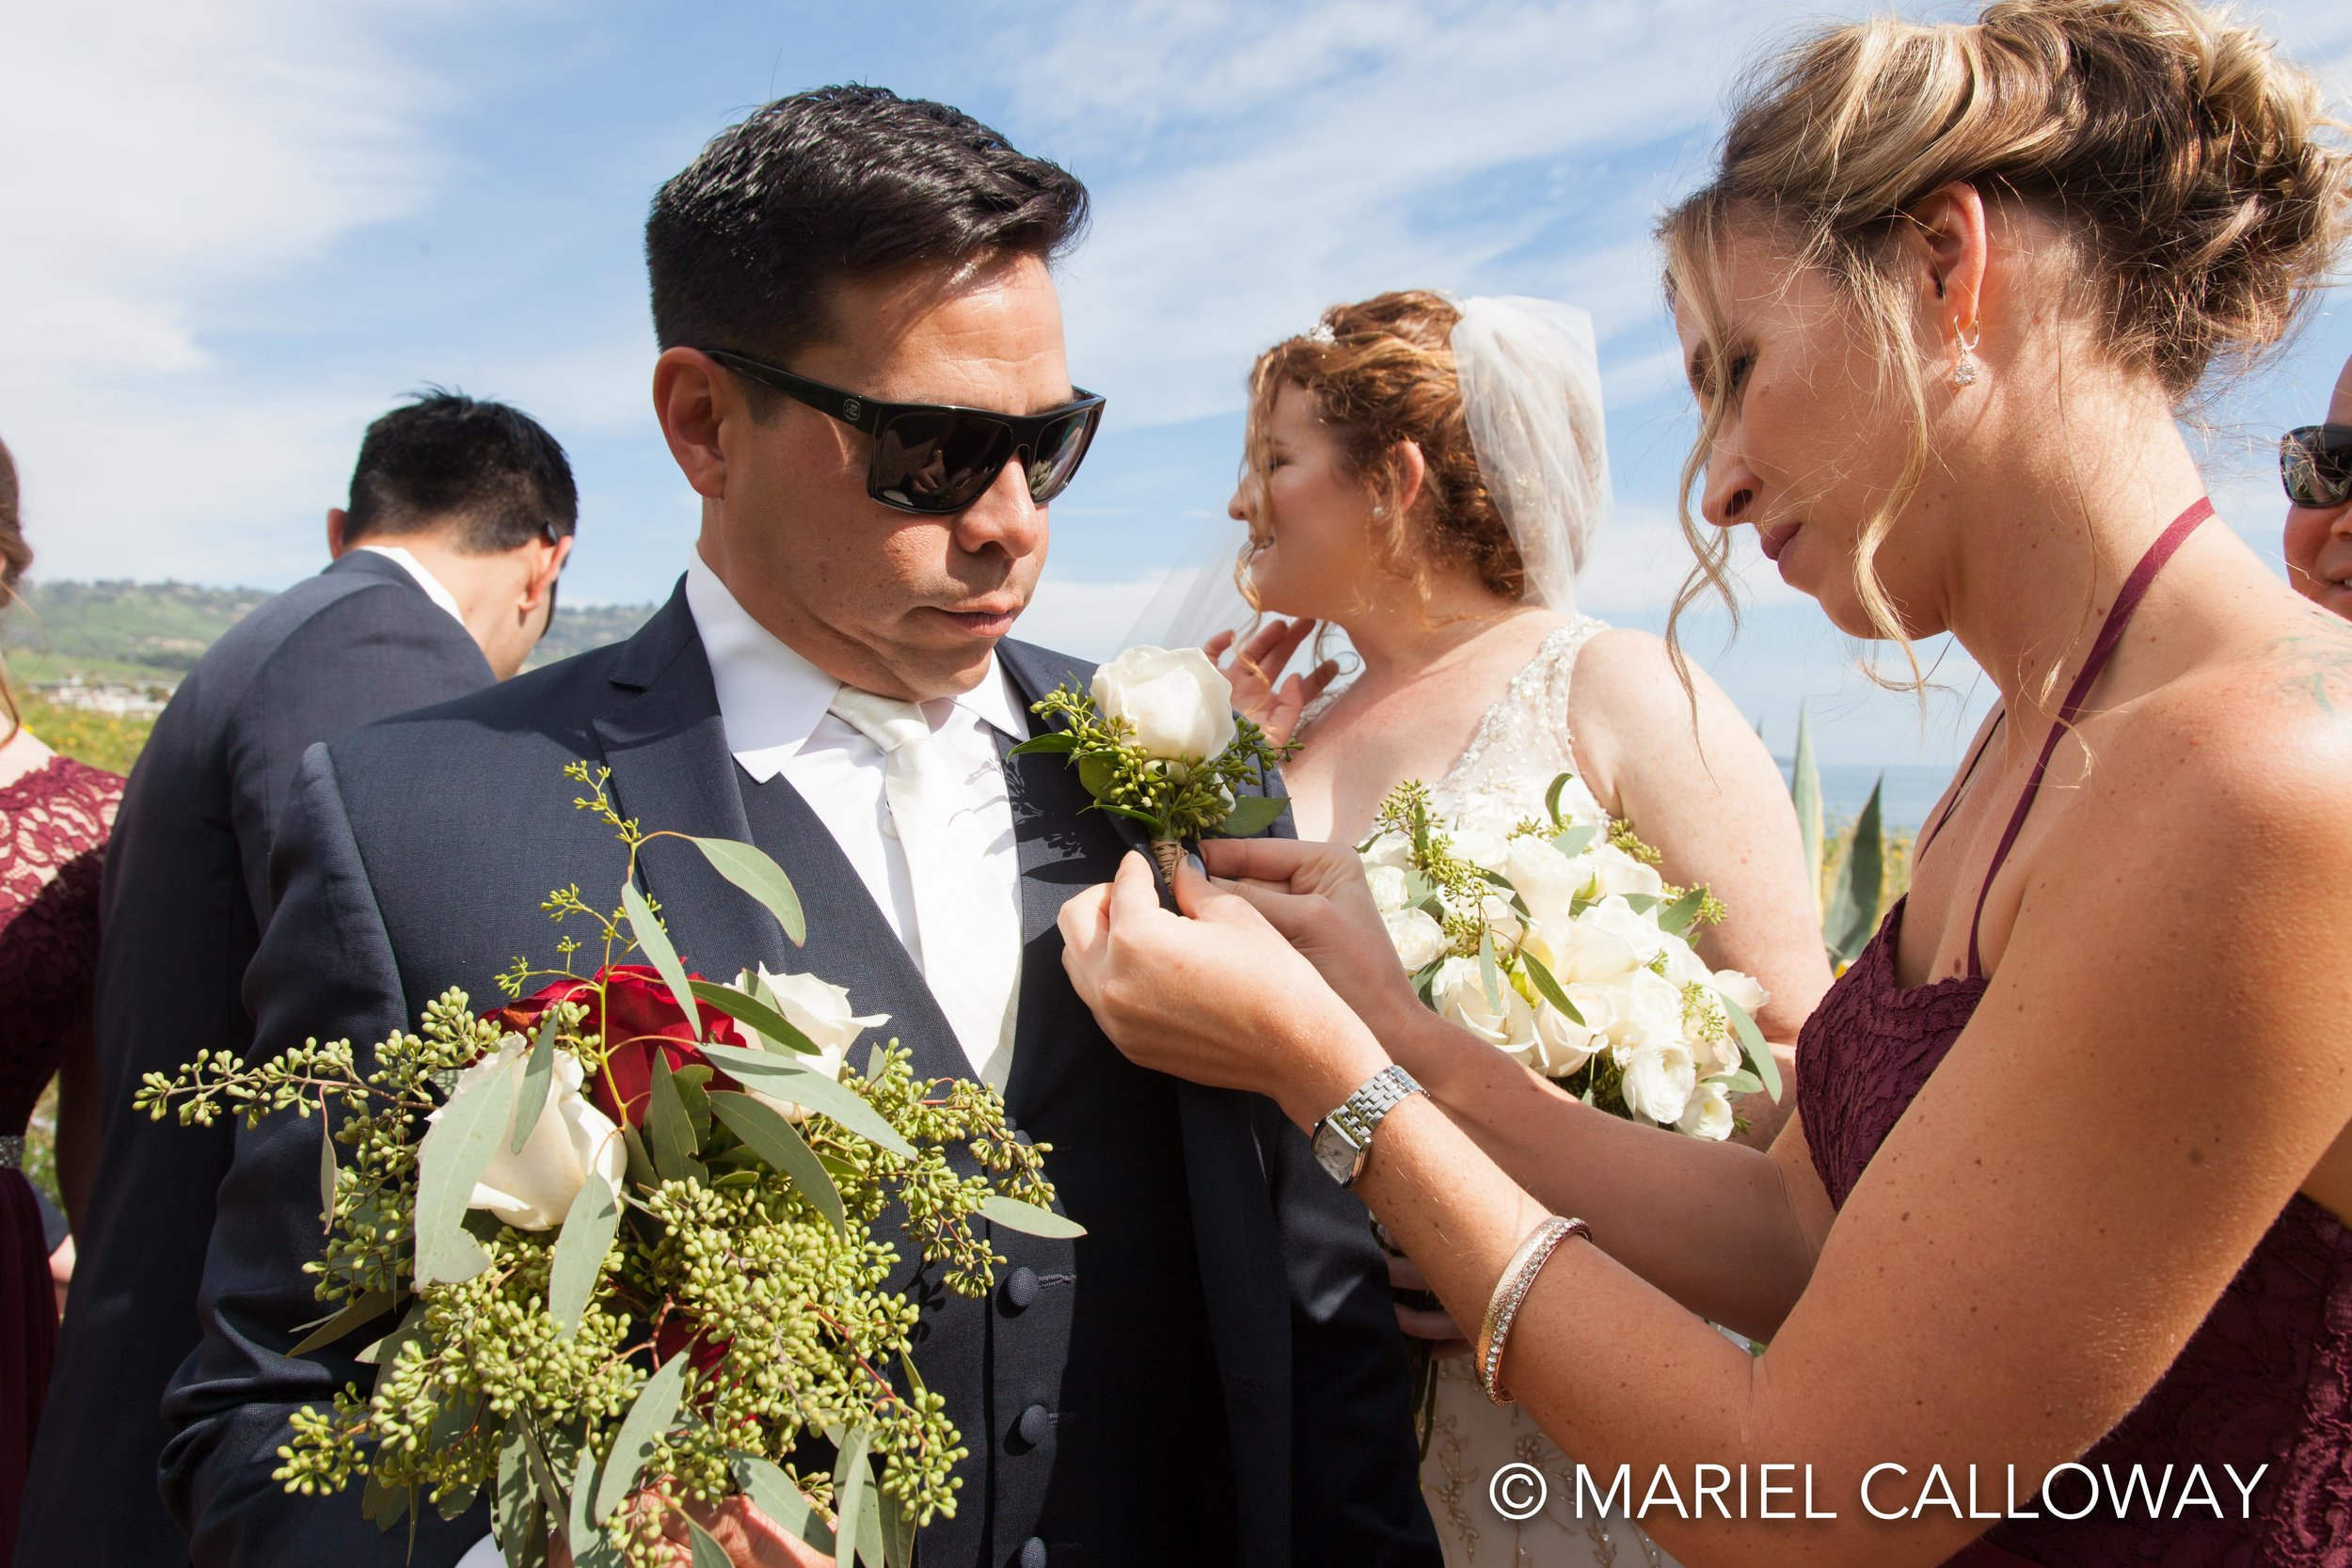 Mariel-Calloway-Los-Angeles-Wedding-Photography-Carmona-8.jpg